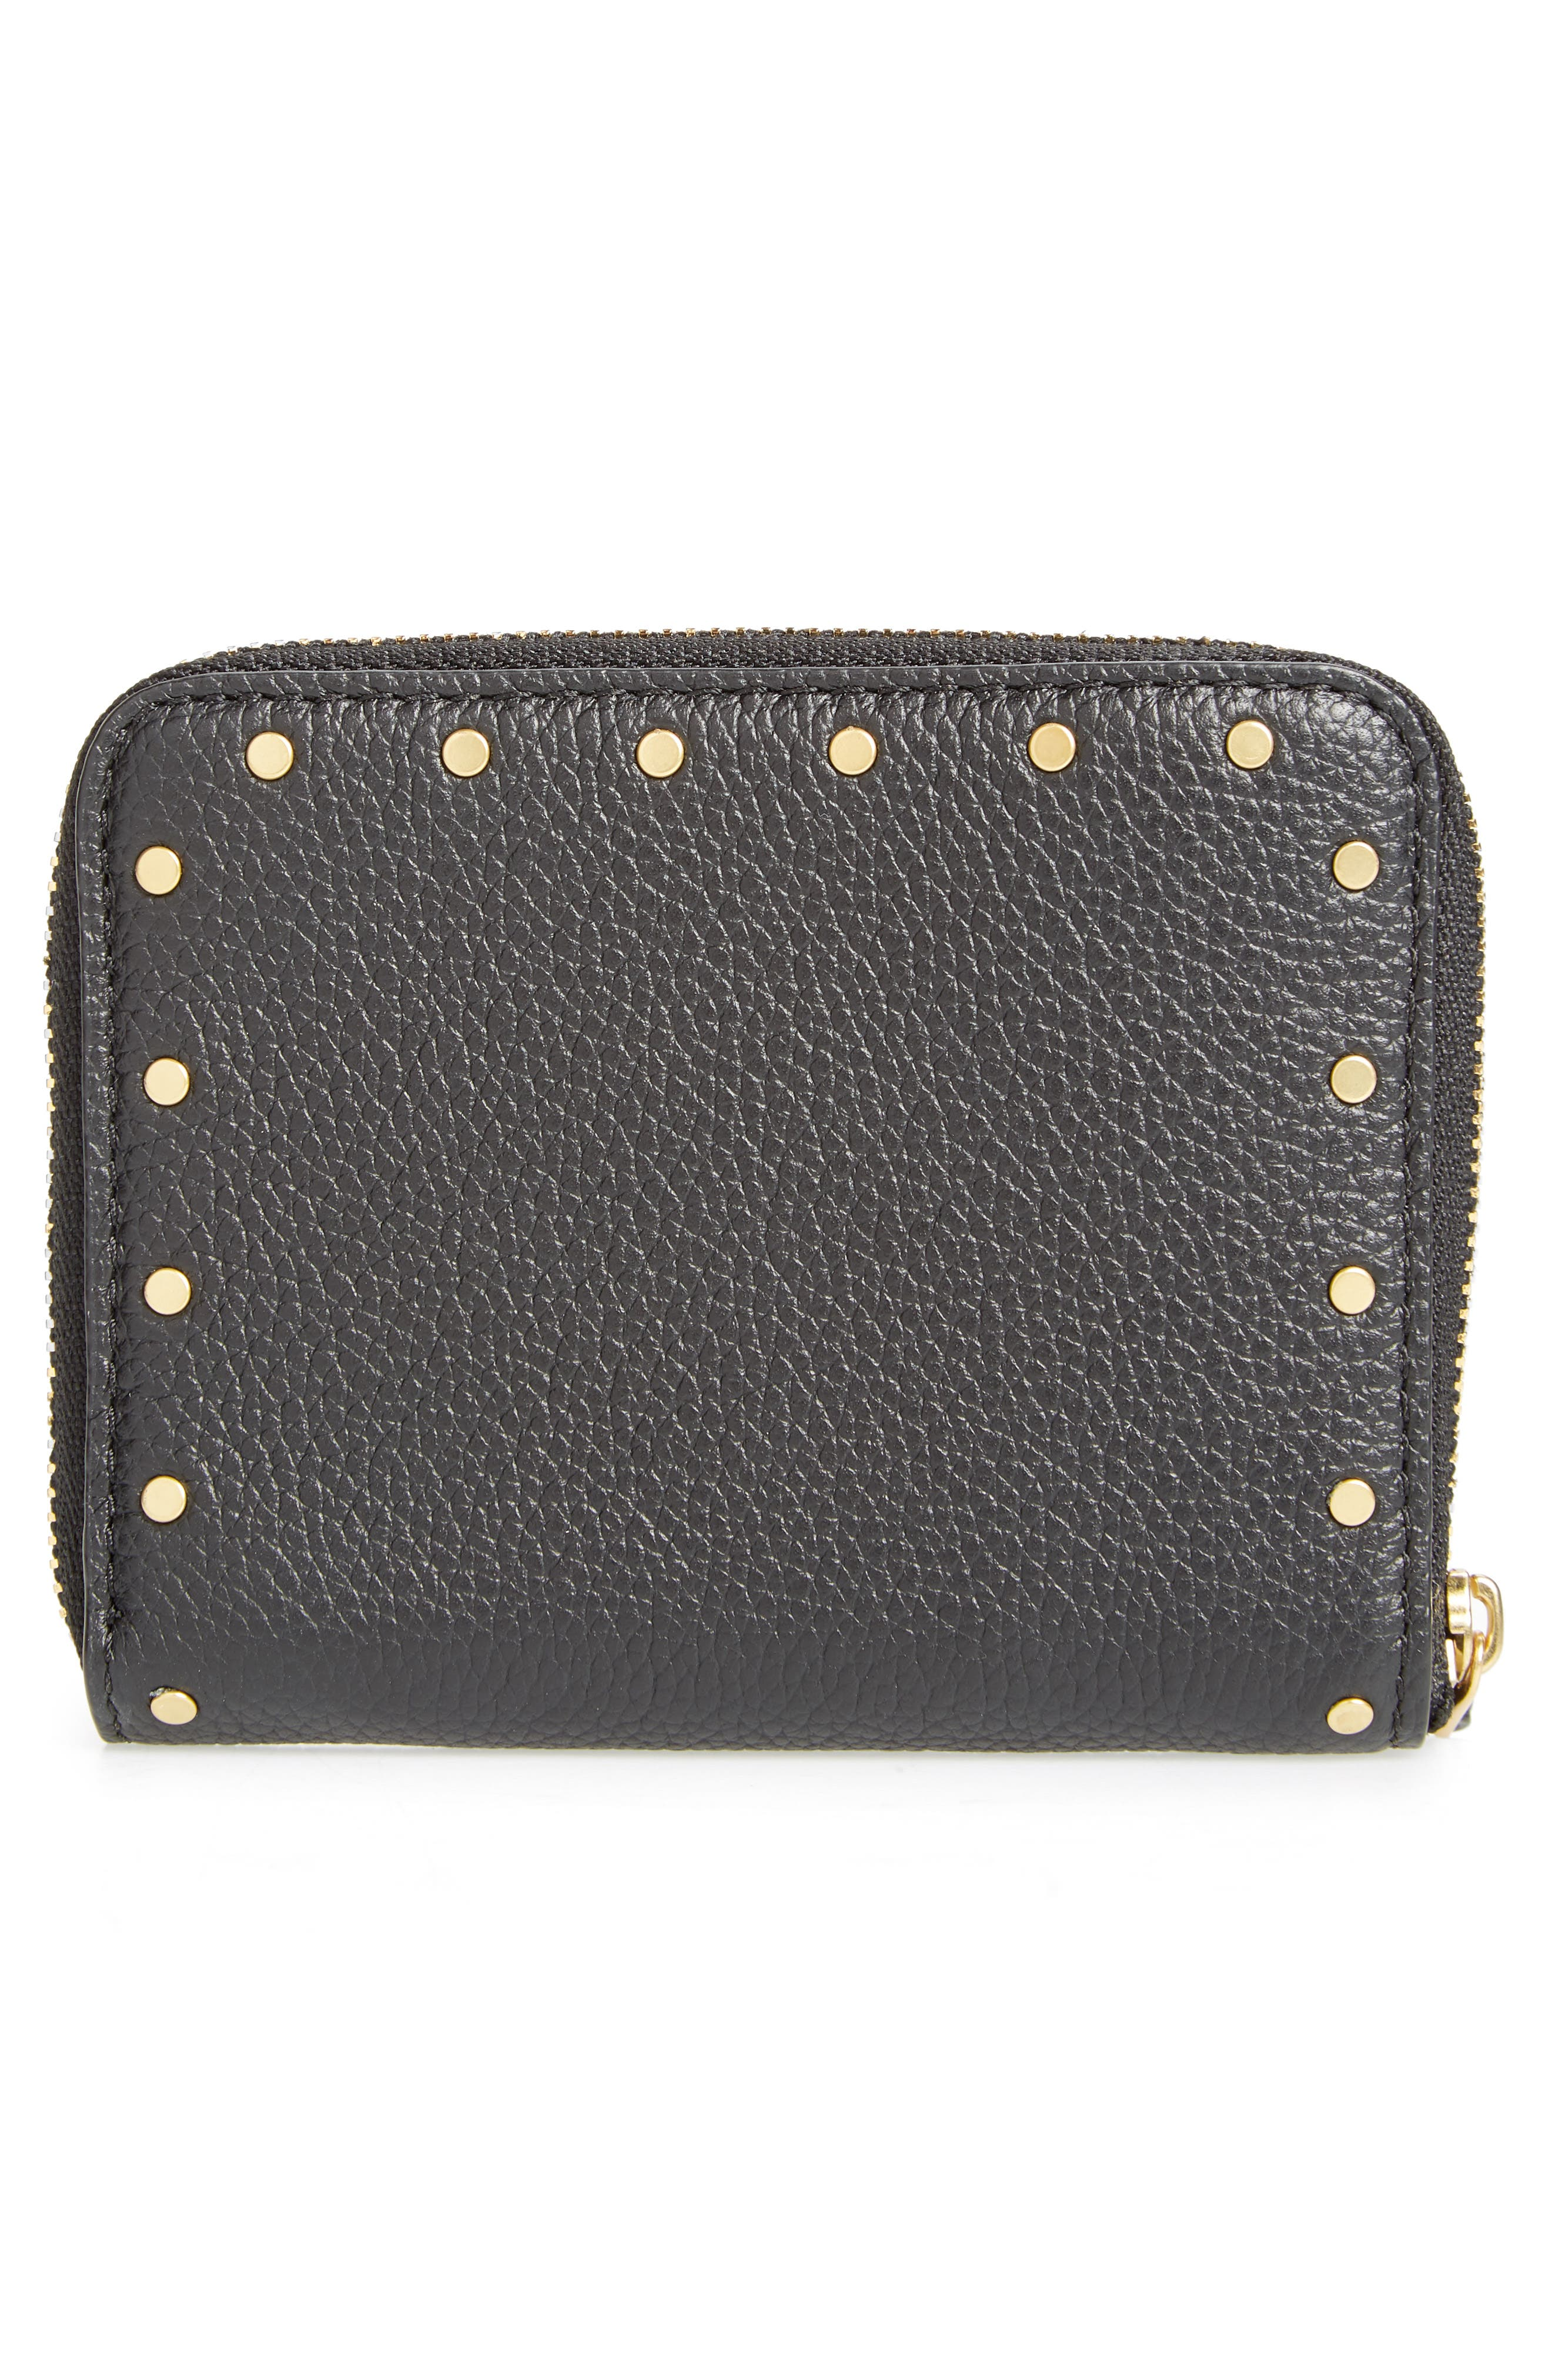 Small Rivets Leather Zip Around Wallet,                             Alternate thumbnail 4, color,                             001